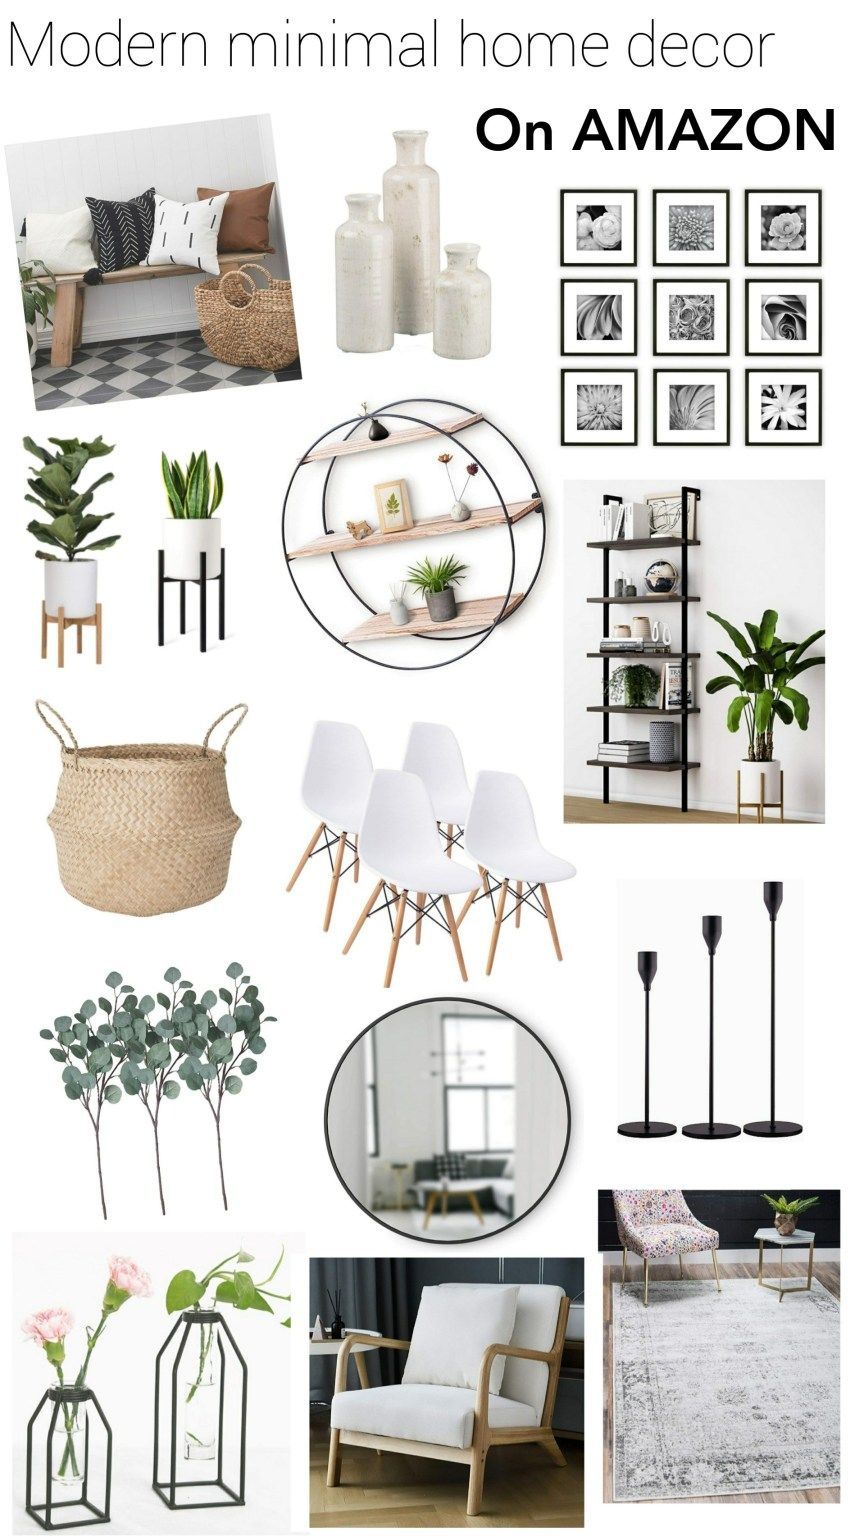 Affordable AMAZON home decor for every style